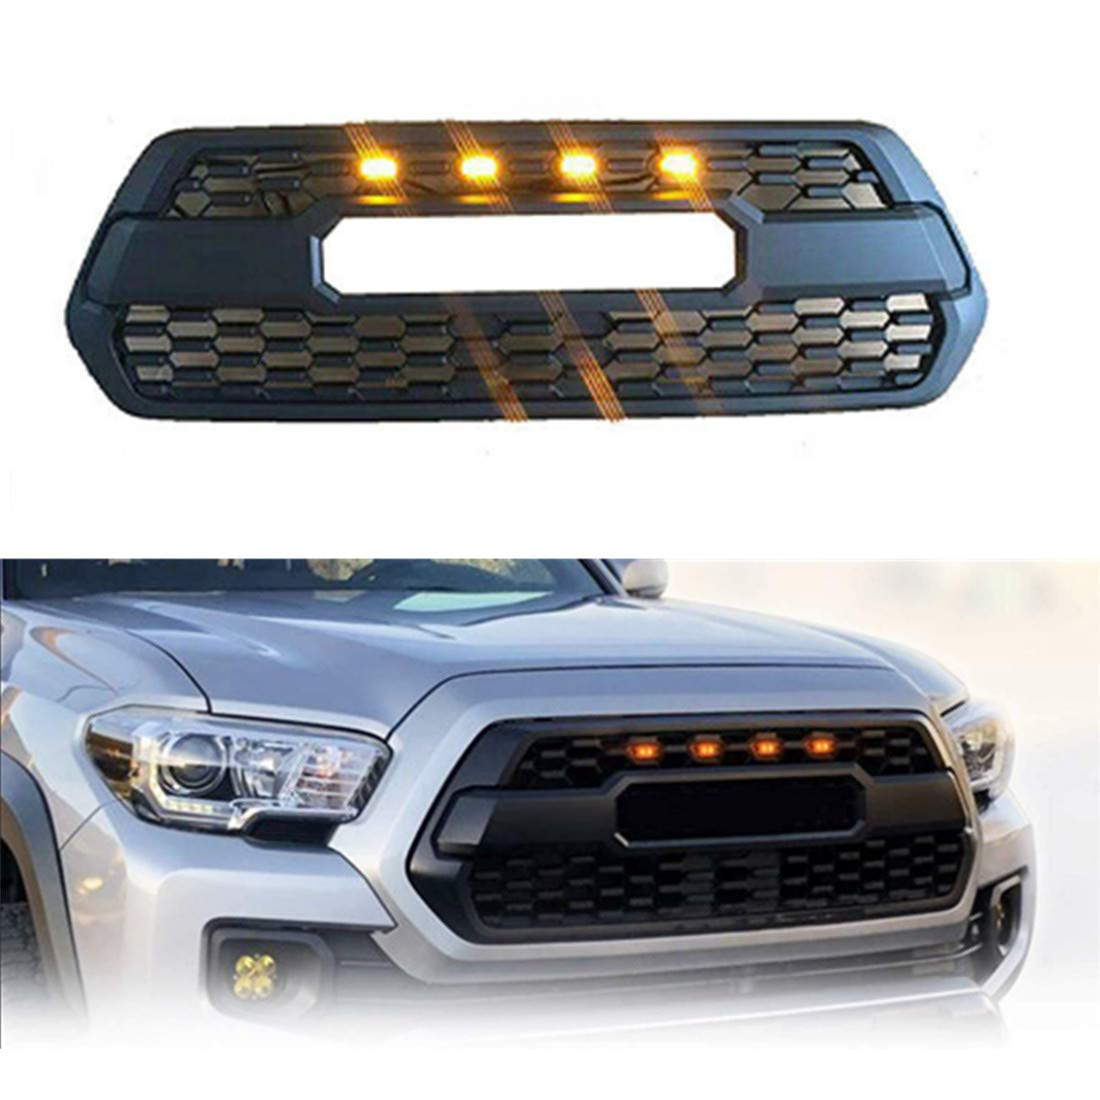 TIKSCIENCE 4pcs Grill Lights Amber LED Fits for Toyota Tacoma TRD PRO Grille 2016 2017 2018,with The Wiring Harness